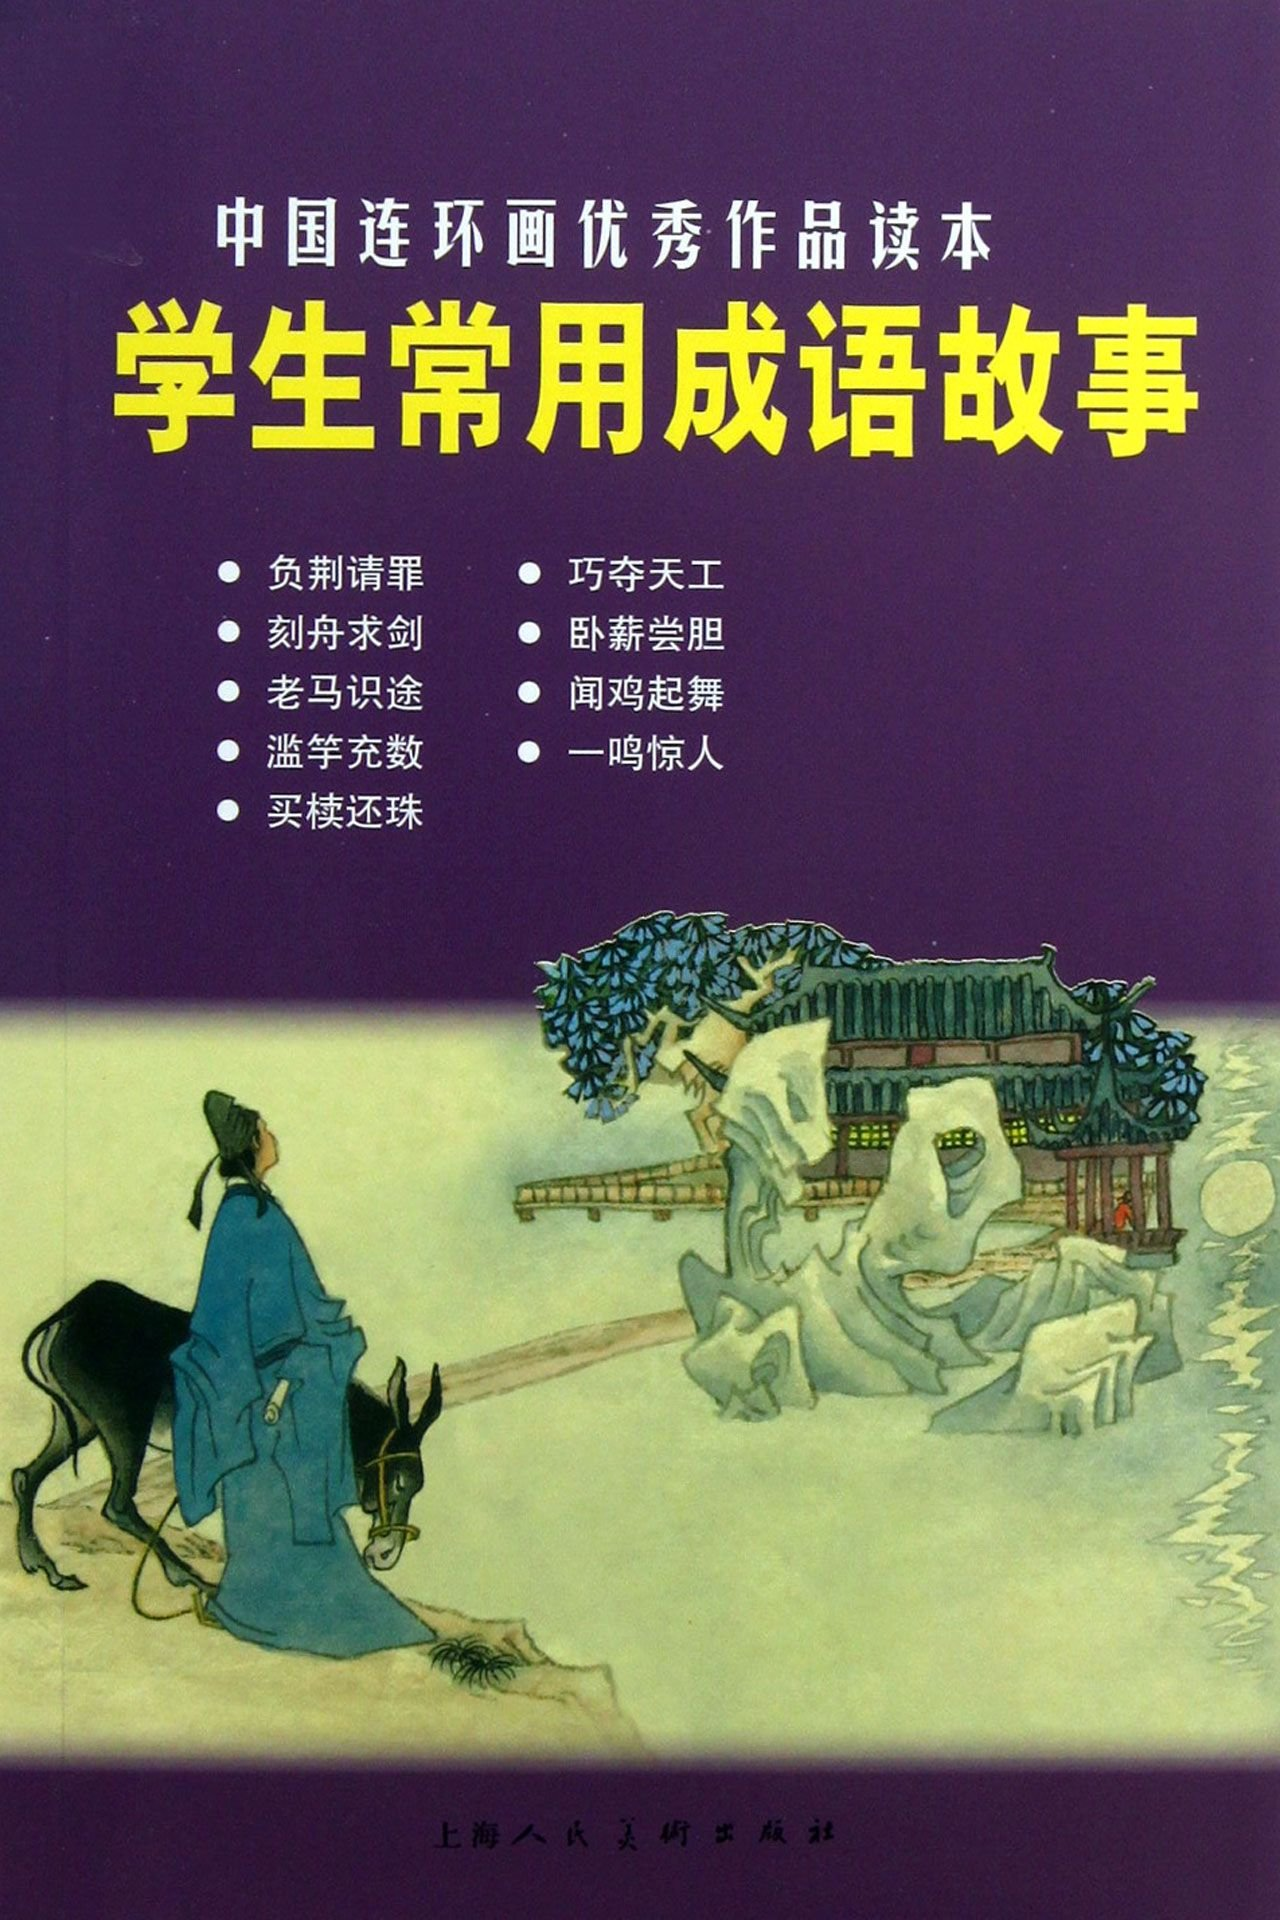 Download Stories about the Commonly Used Idioms for Students (Chinese Edition) ebook